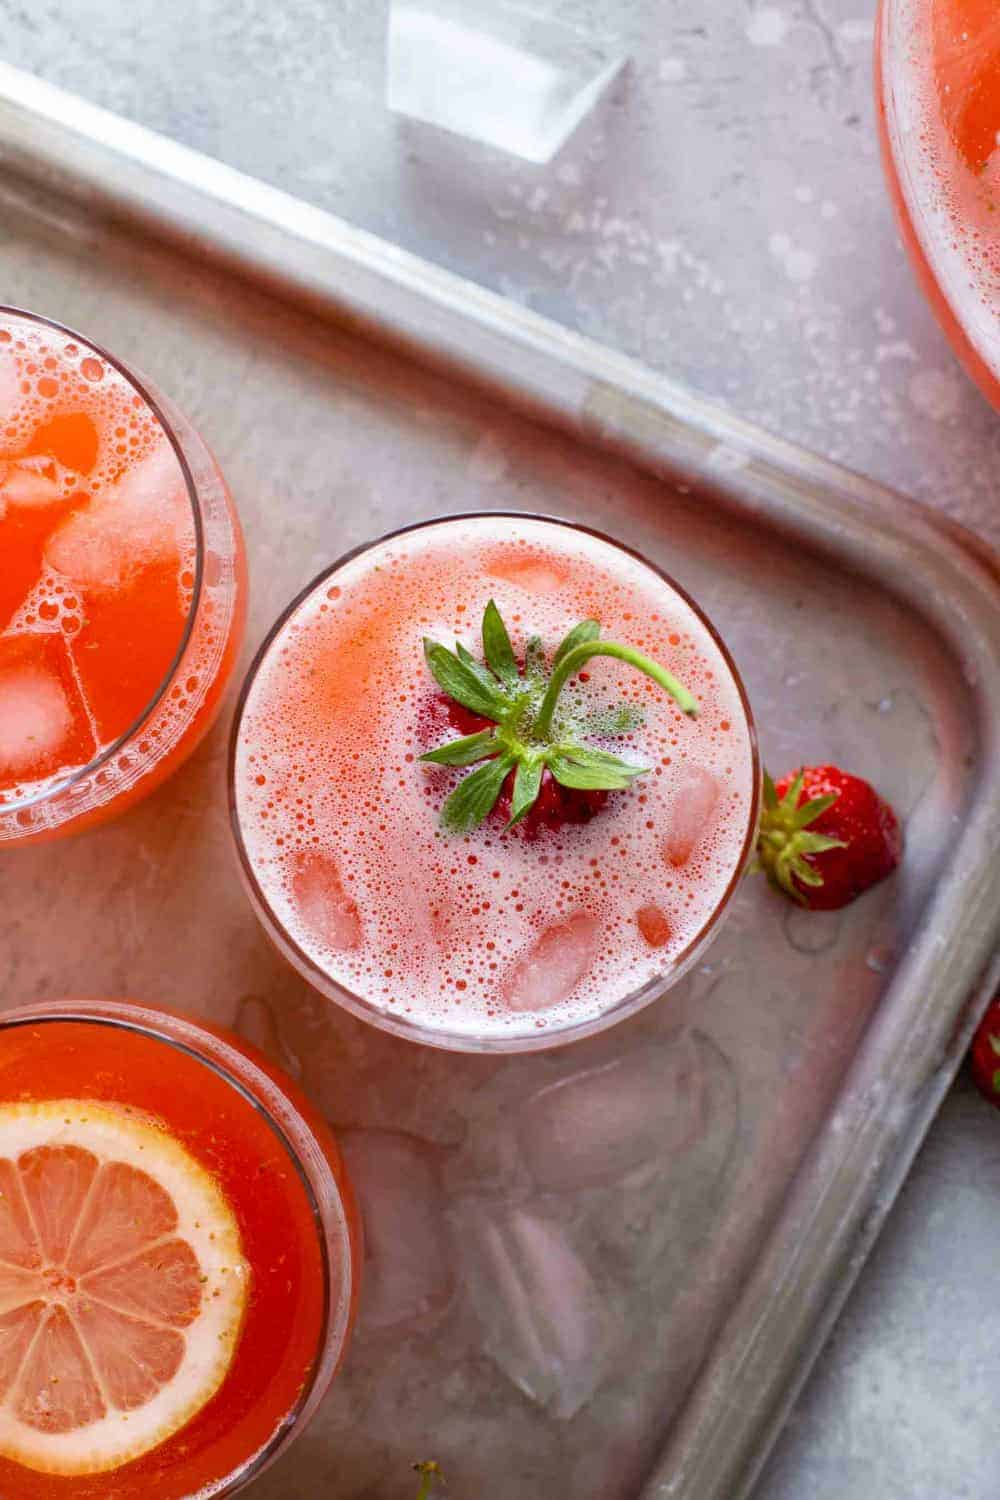 Overhead view of glasses of strawberry lemonade on a sheet tray